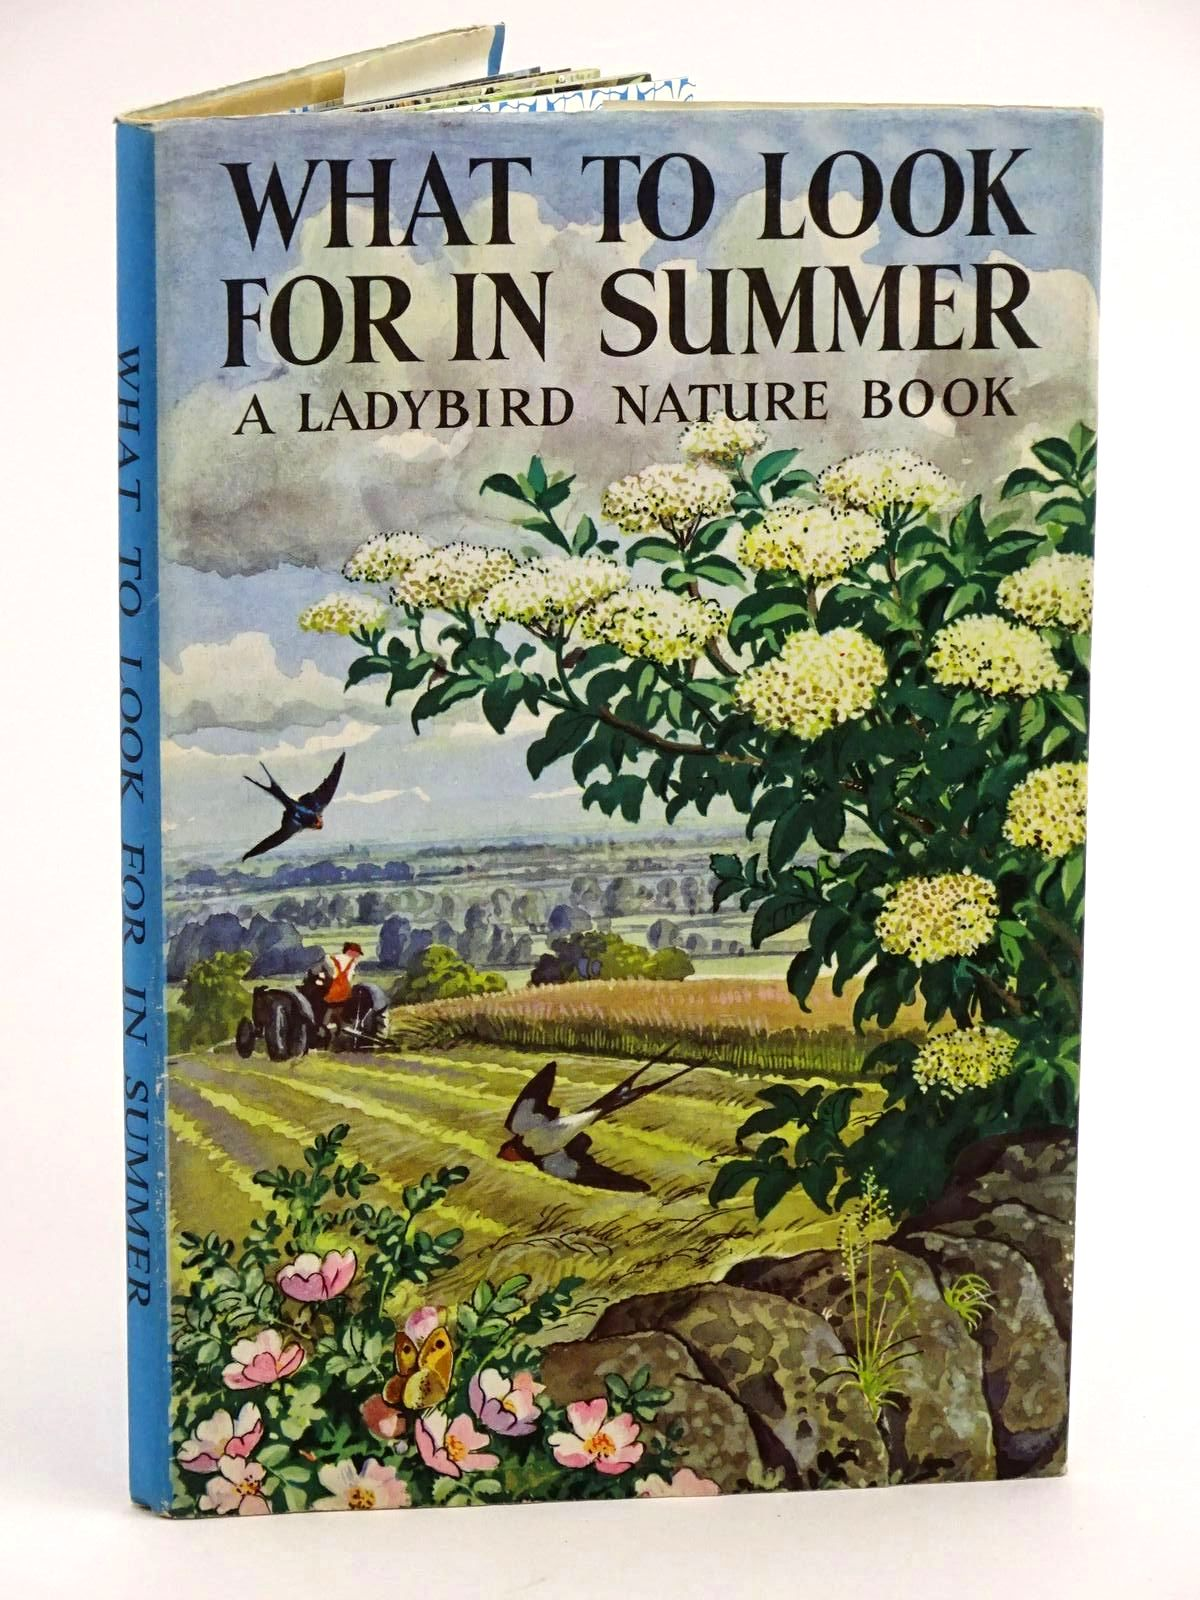 Photo of WHAT TO LOOK FOR IN SUMMER written by Watson, E.L. Grant illustrated by Tunnicliffe, C.F. published by Wills & Hepworth Ltd. (STOCK CODE: 1318145)  for sale by Stella & Rose's Books